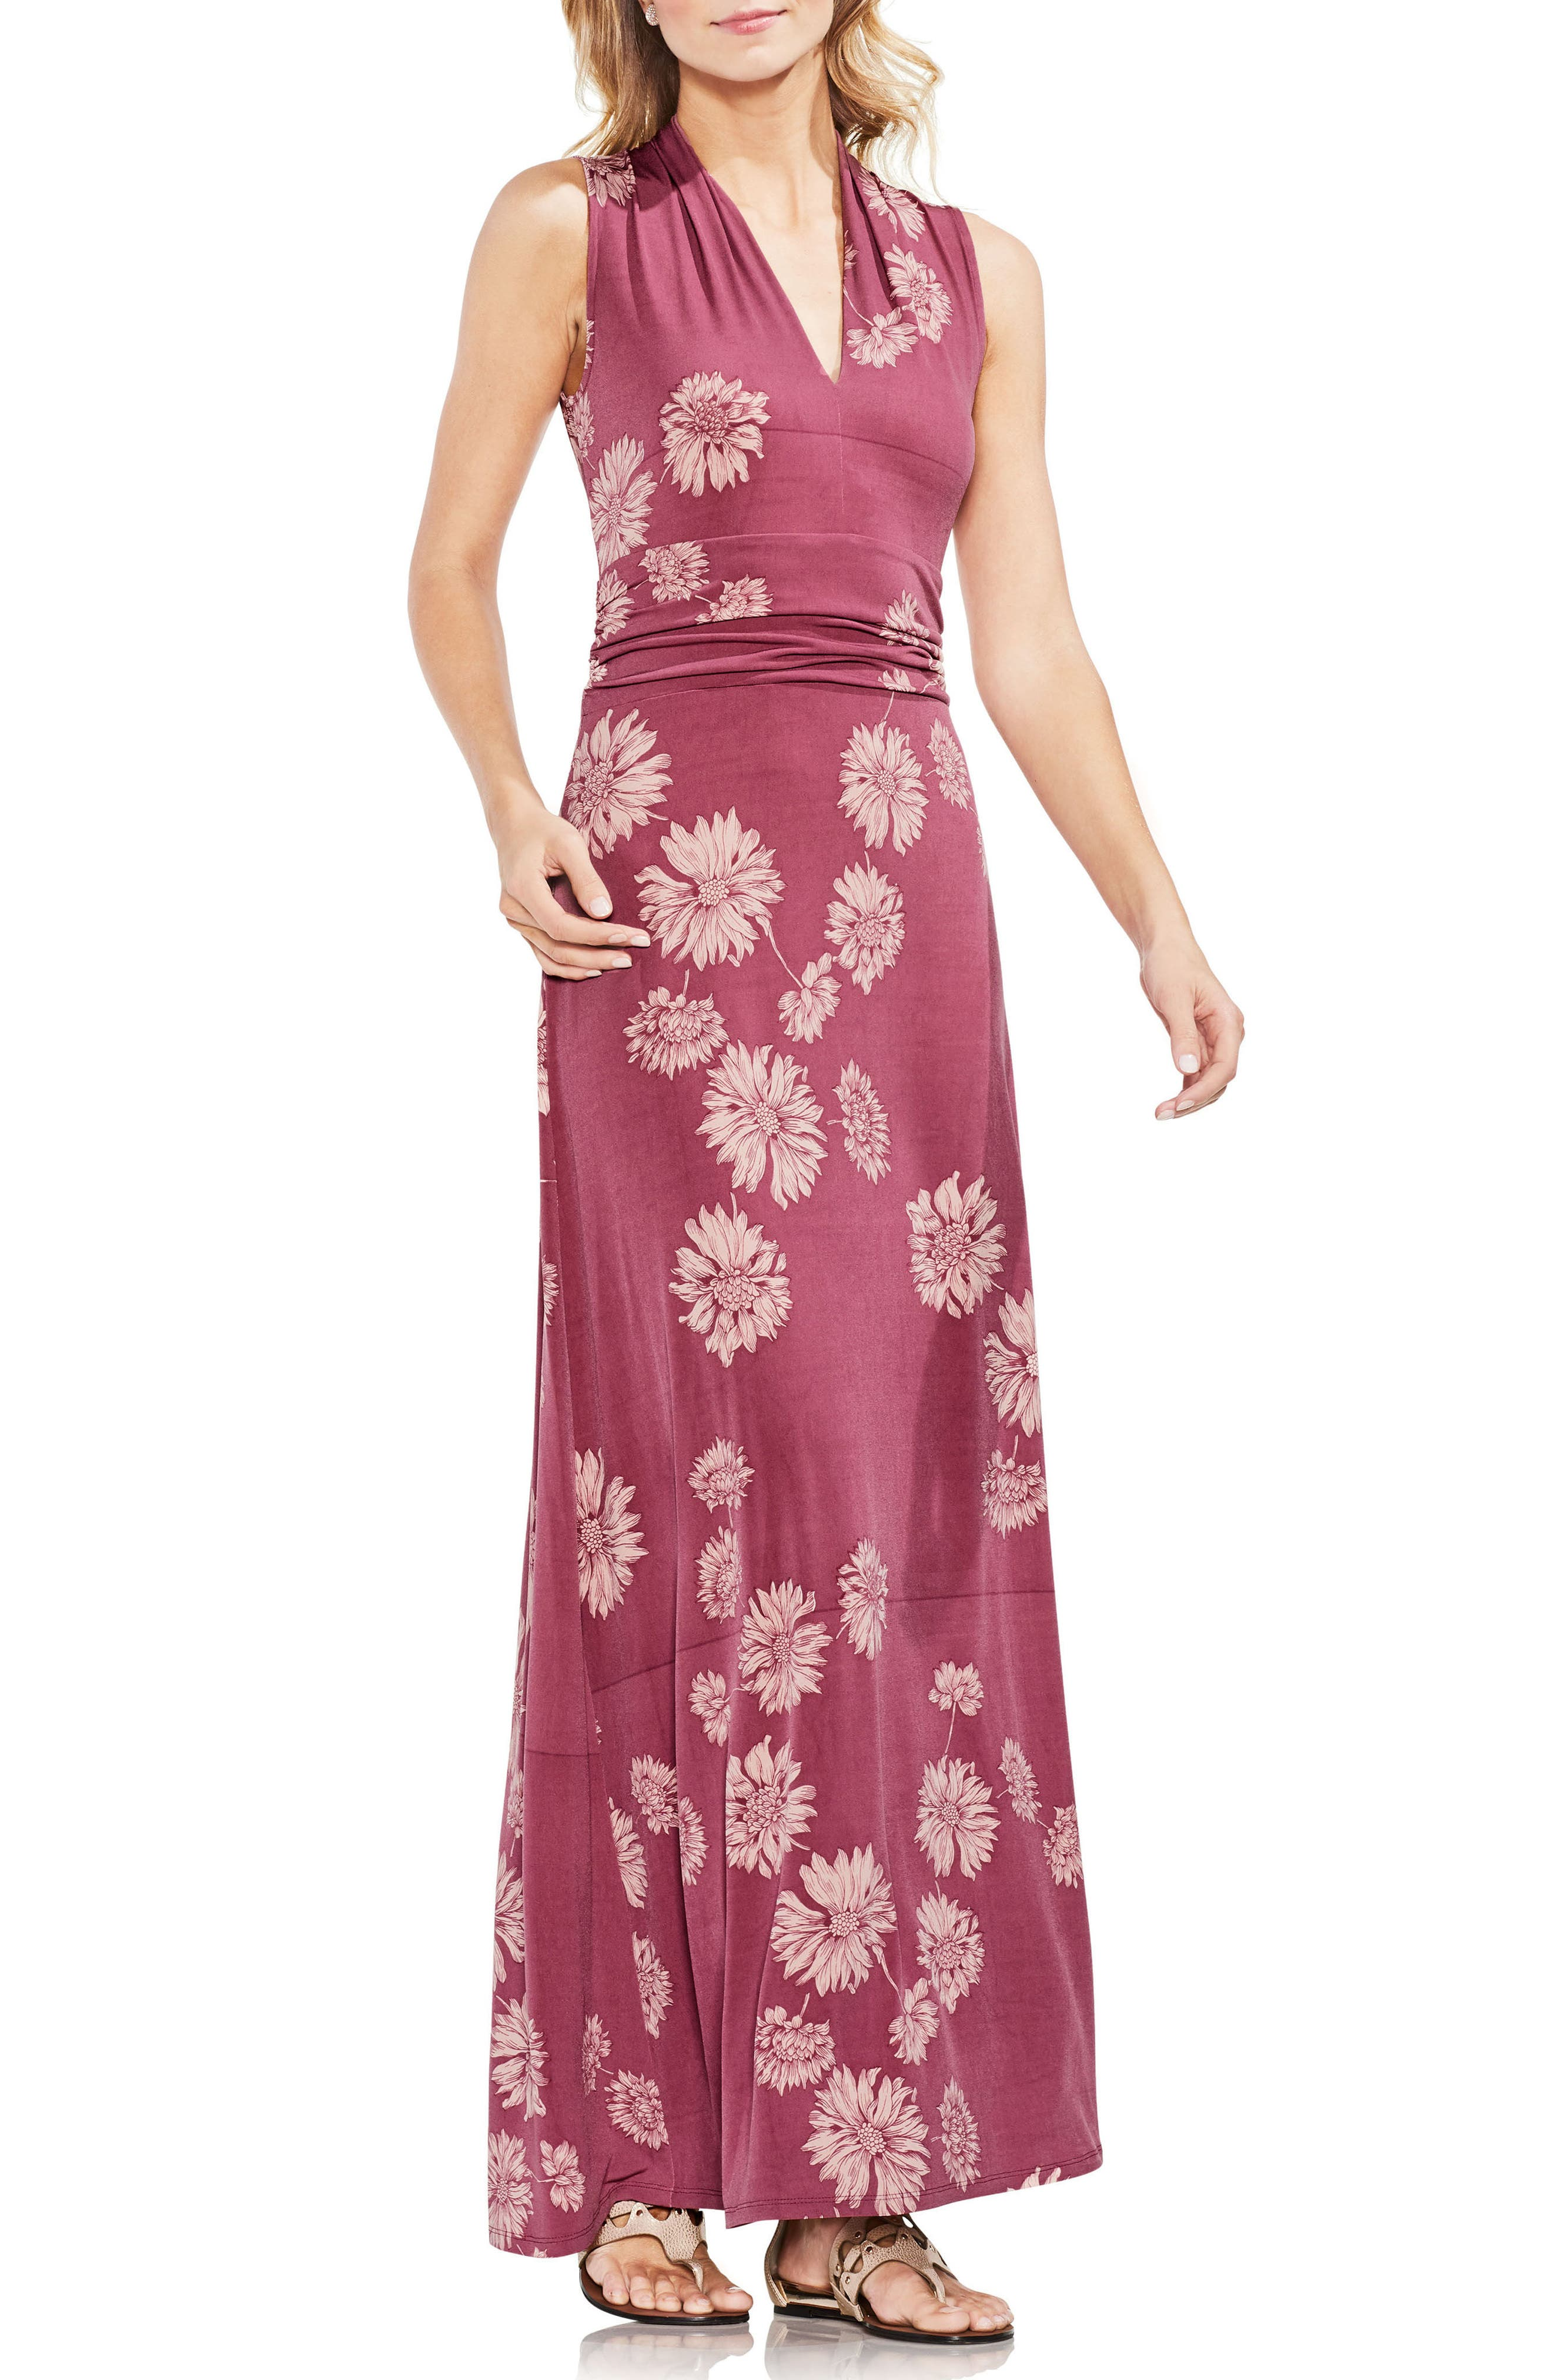 Chateau Floral Halter Maxi Dress,                         Main,                         color, Summer Rose